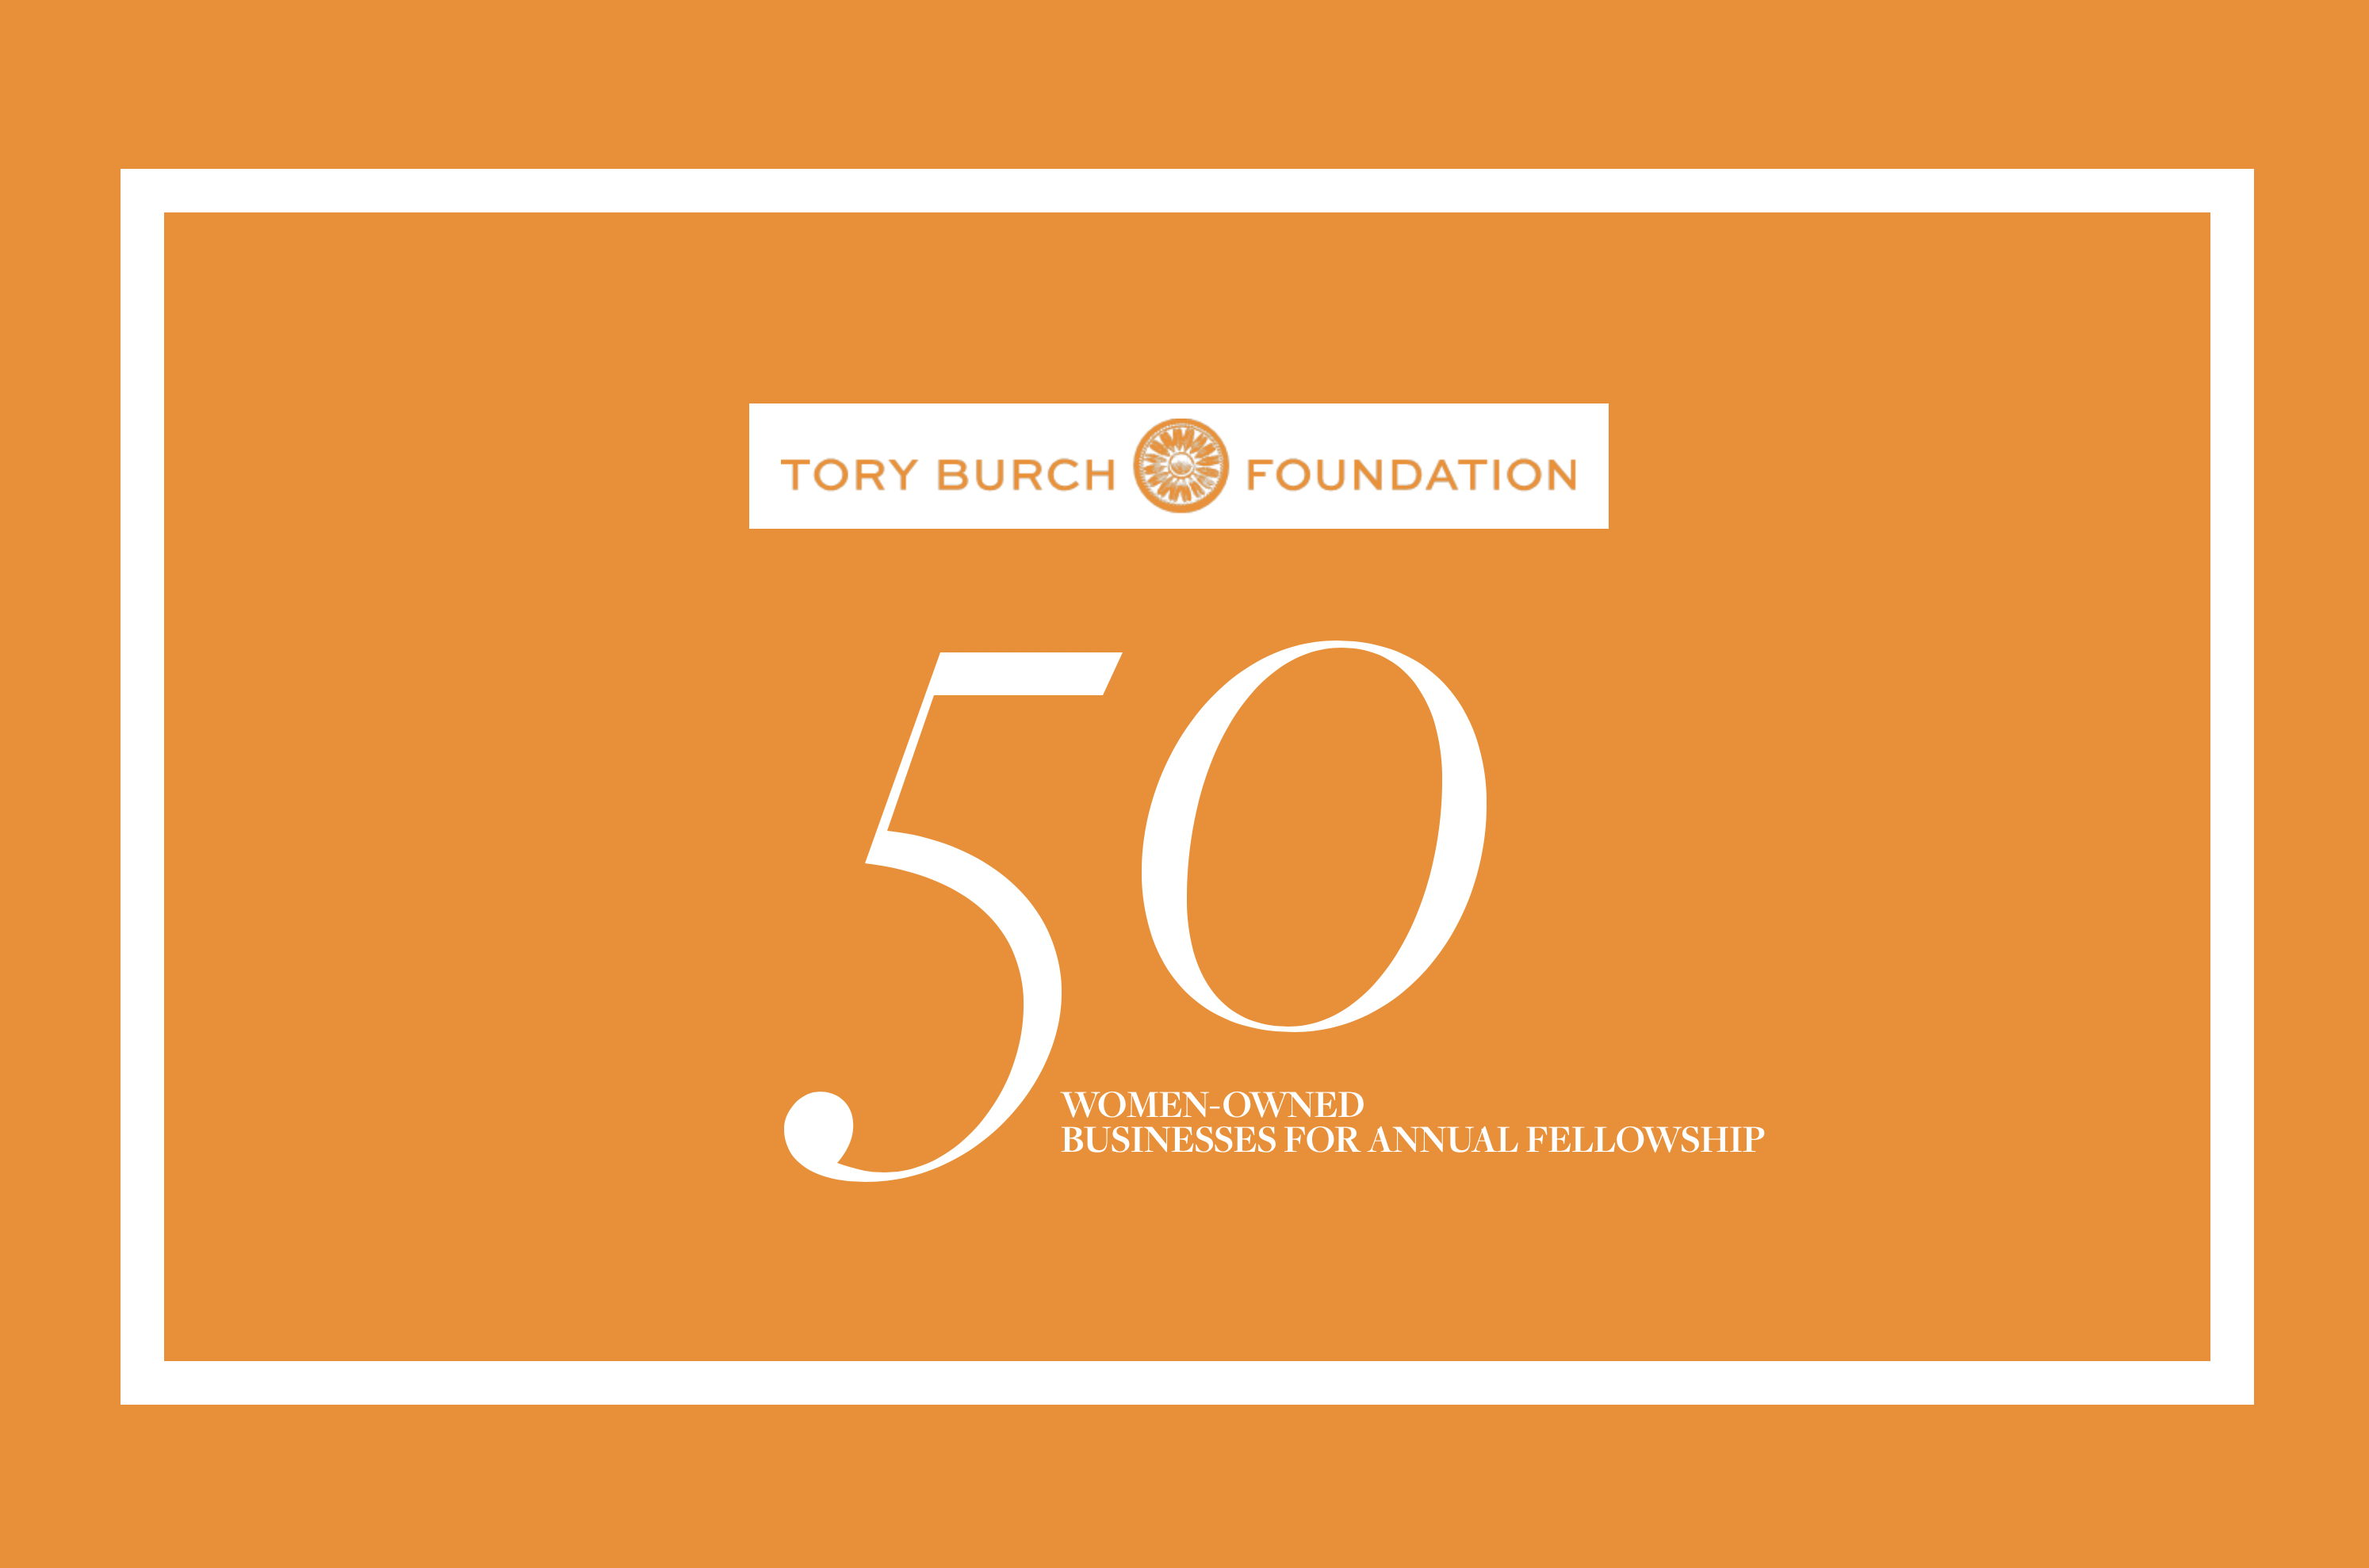 Tory Burch Foundation Selects 50 Women-Owned Businesses For Annual Fellowship